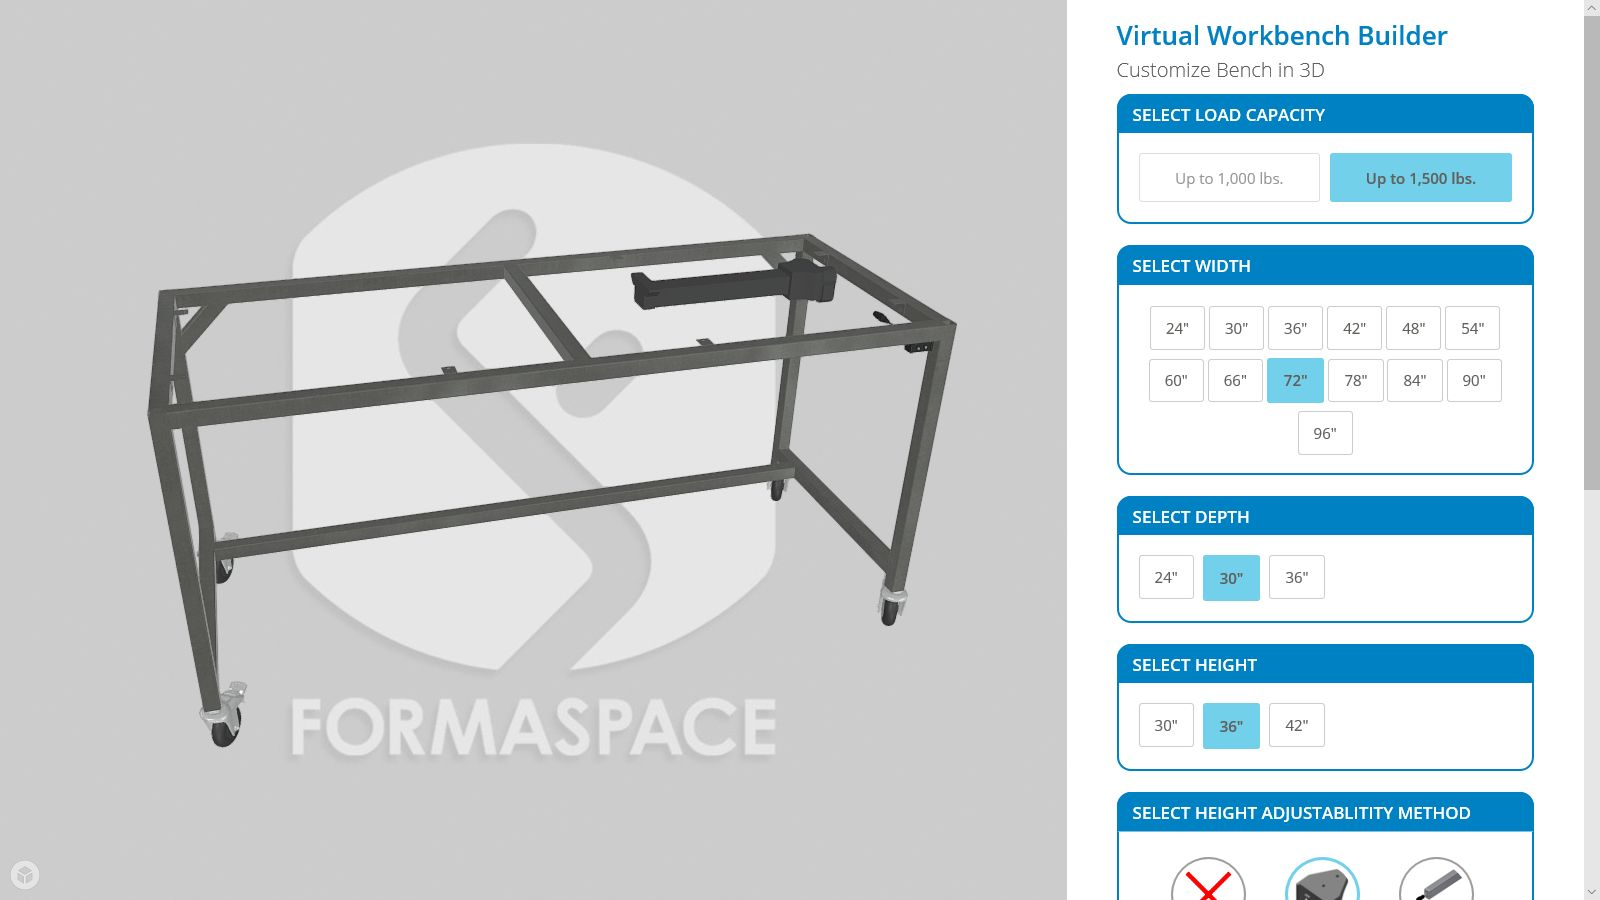 3D Virtual Workbench Builder page 1